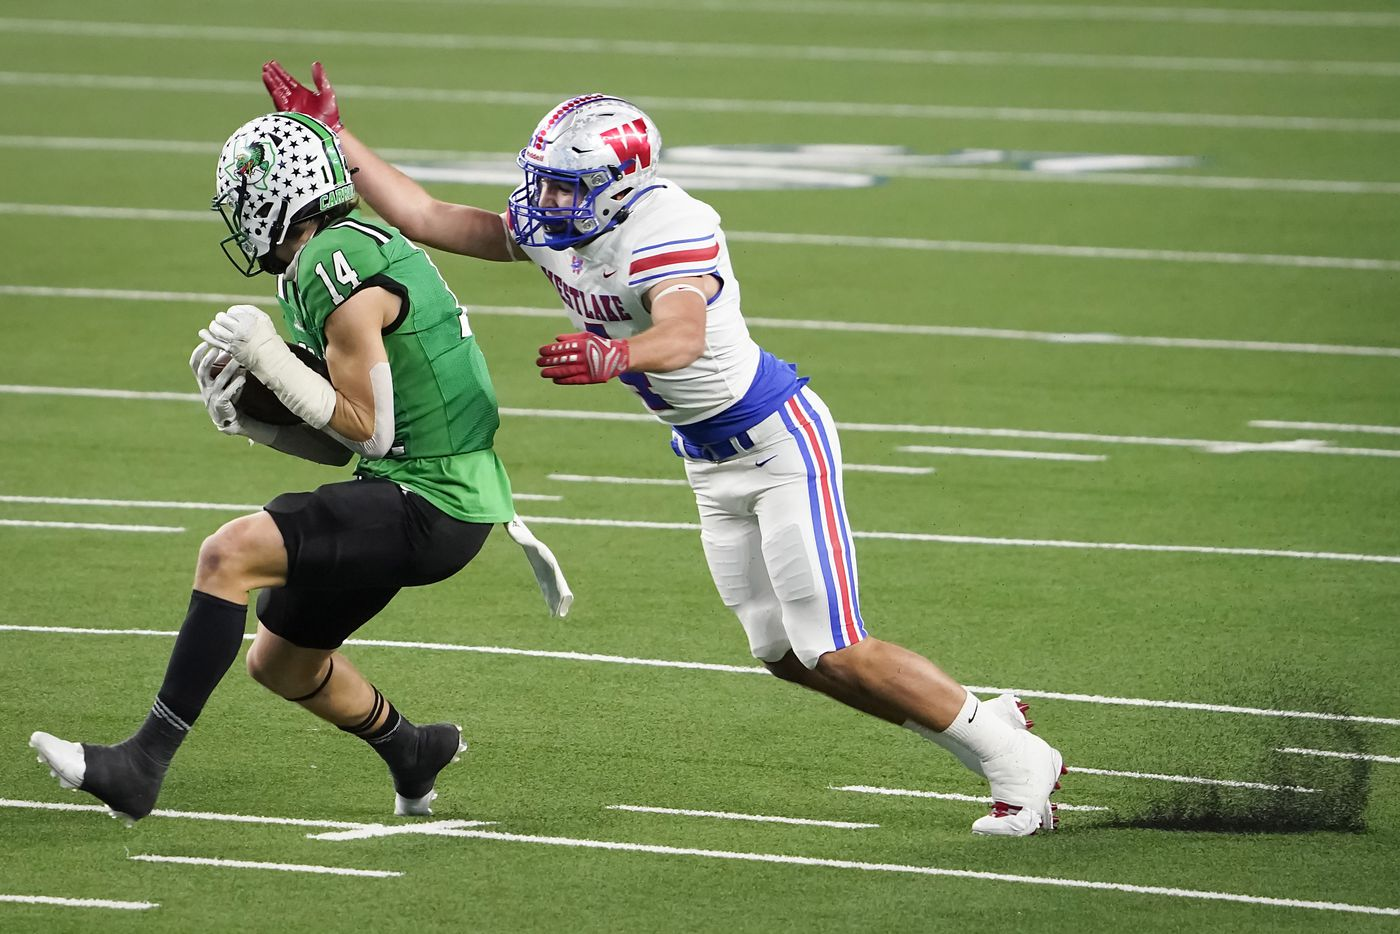 Southlake Carroll wide receiver Brady Boyd (14) catches a pass on a 49-yard touchdown past Austin Westlake defensive back Jax Crockett during the first quarter of the Class 6A Division I state football championship game at AT&T Stadium on Saturday, Jan. 16, 2021, in Arlington, Texas.